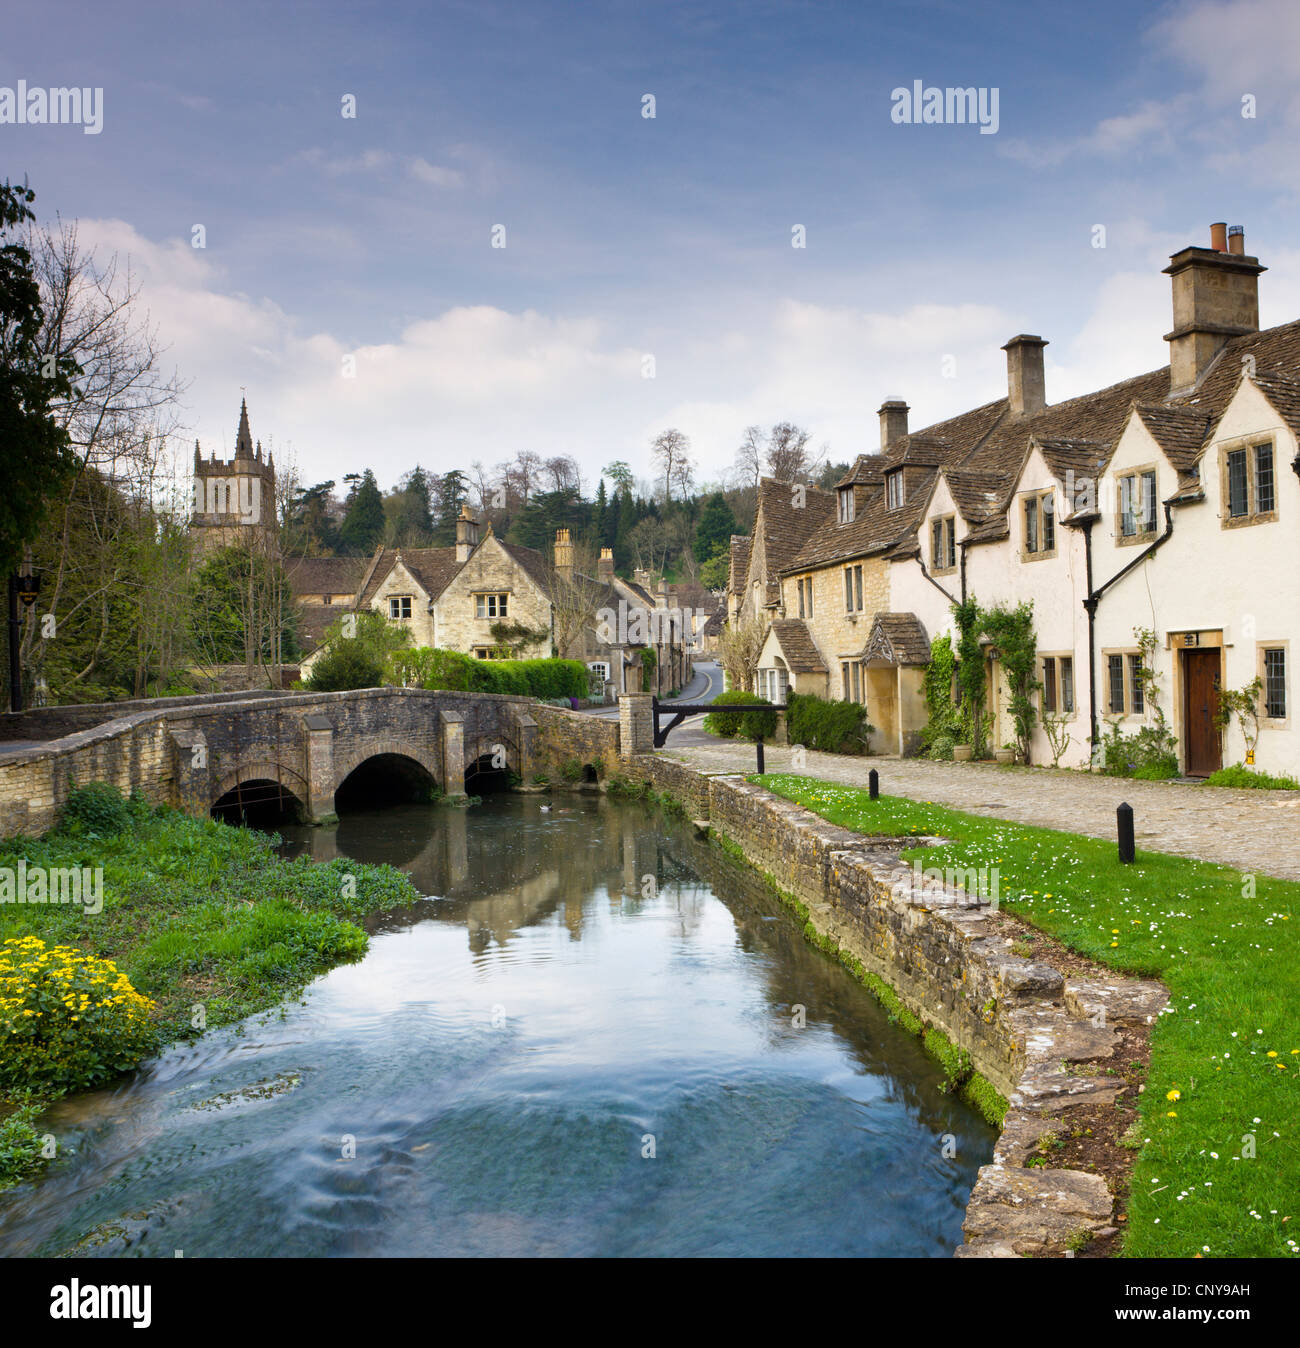 Picturesque Cotswolds village of Castle Combe, Wiltshire, England. Spring (April) 2009 - Stock Image